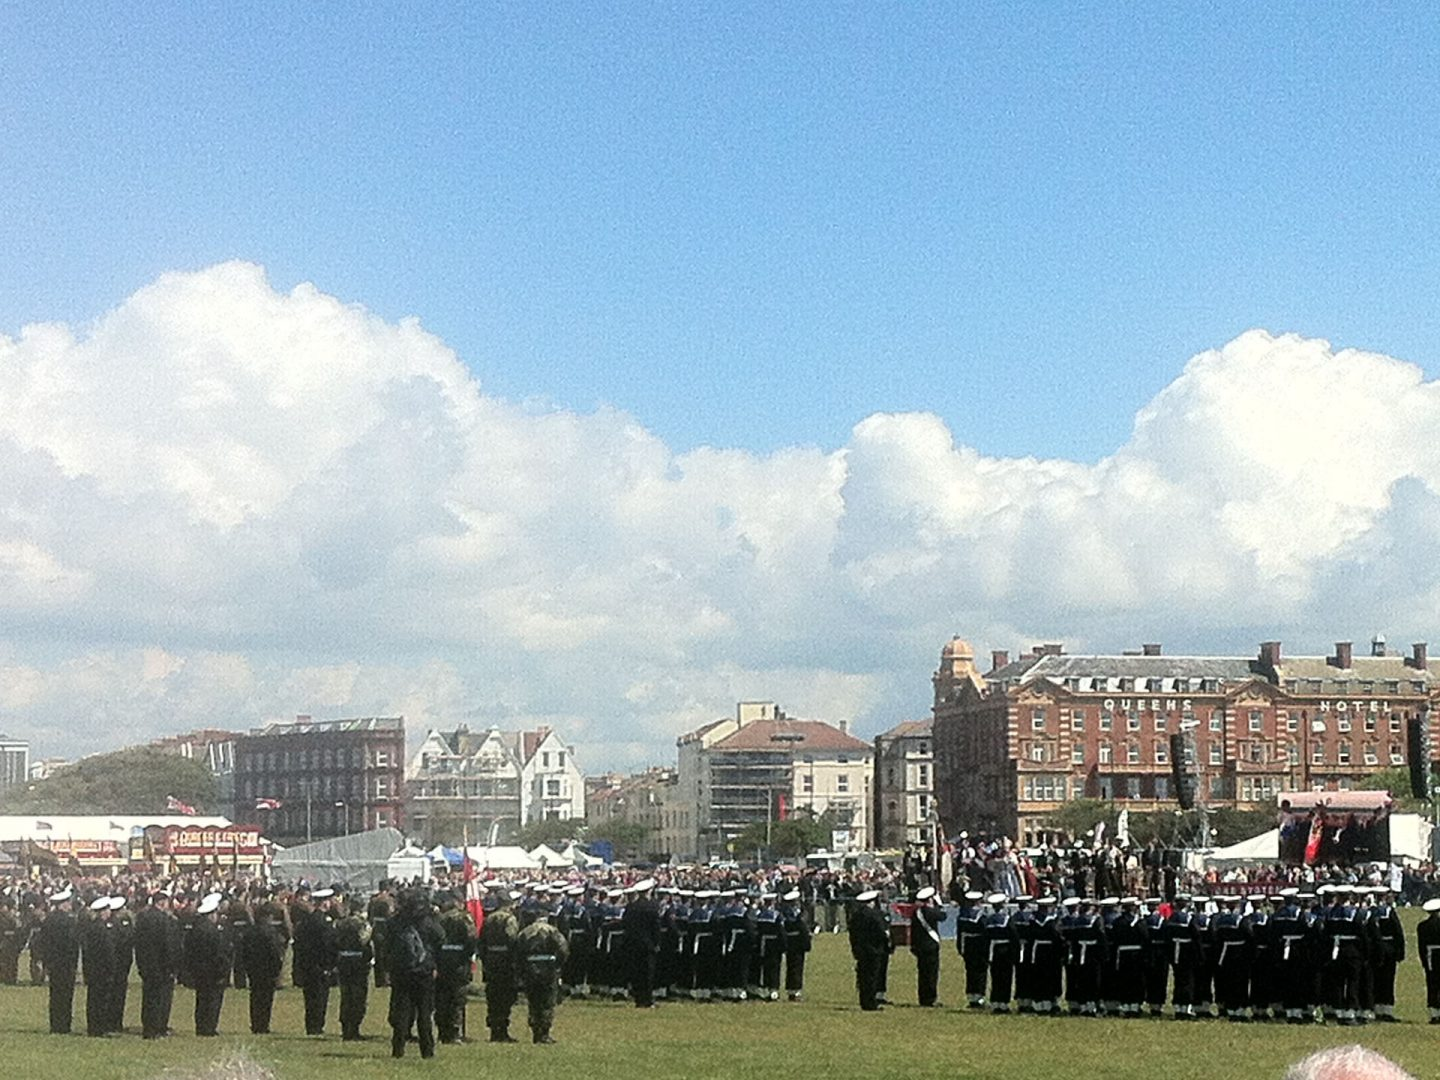 On parade in Southsea